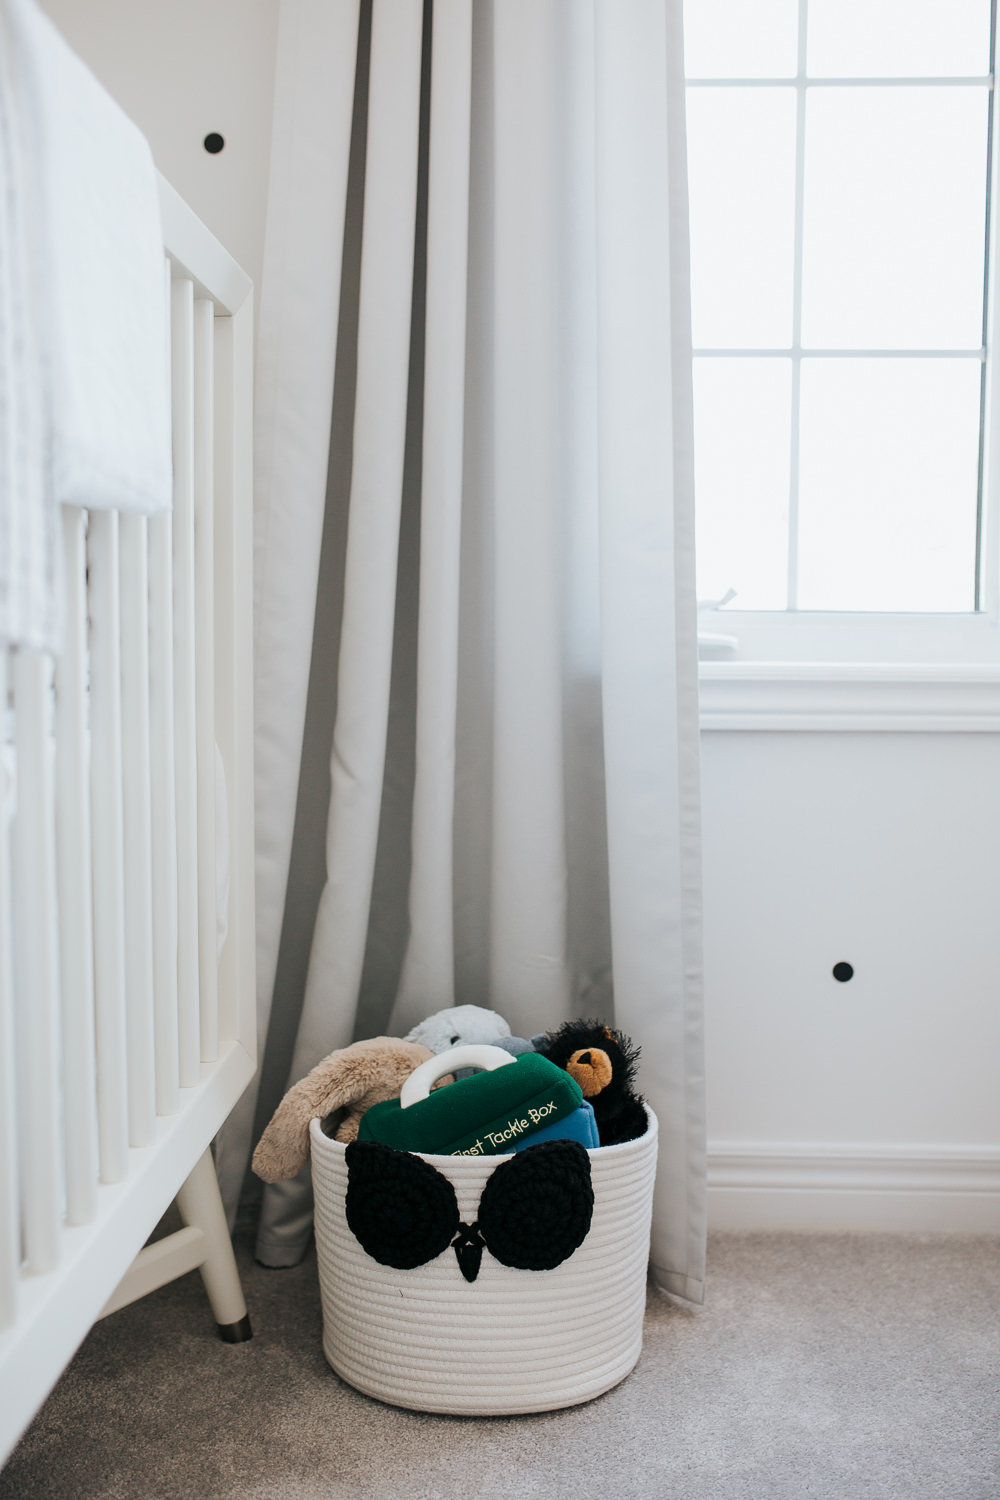 monochromatic black and white nursery details, basket of stuffed toys - Uxbridge lifestyle photos